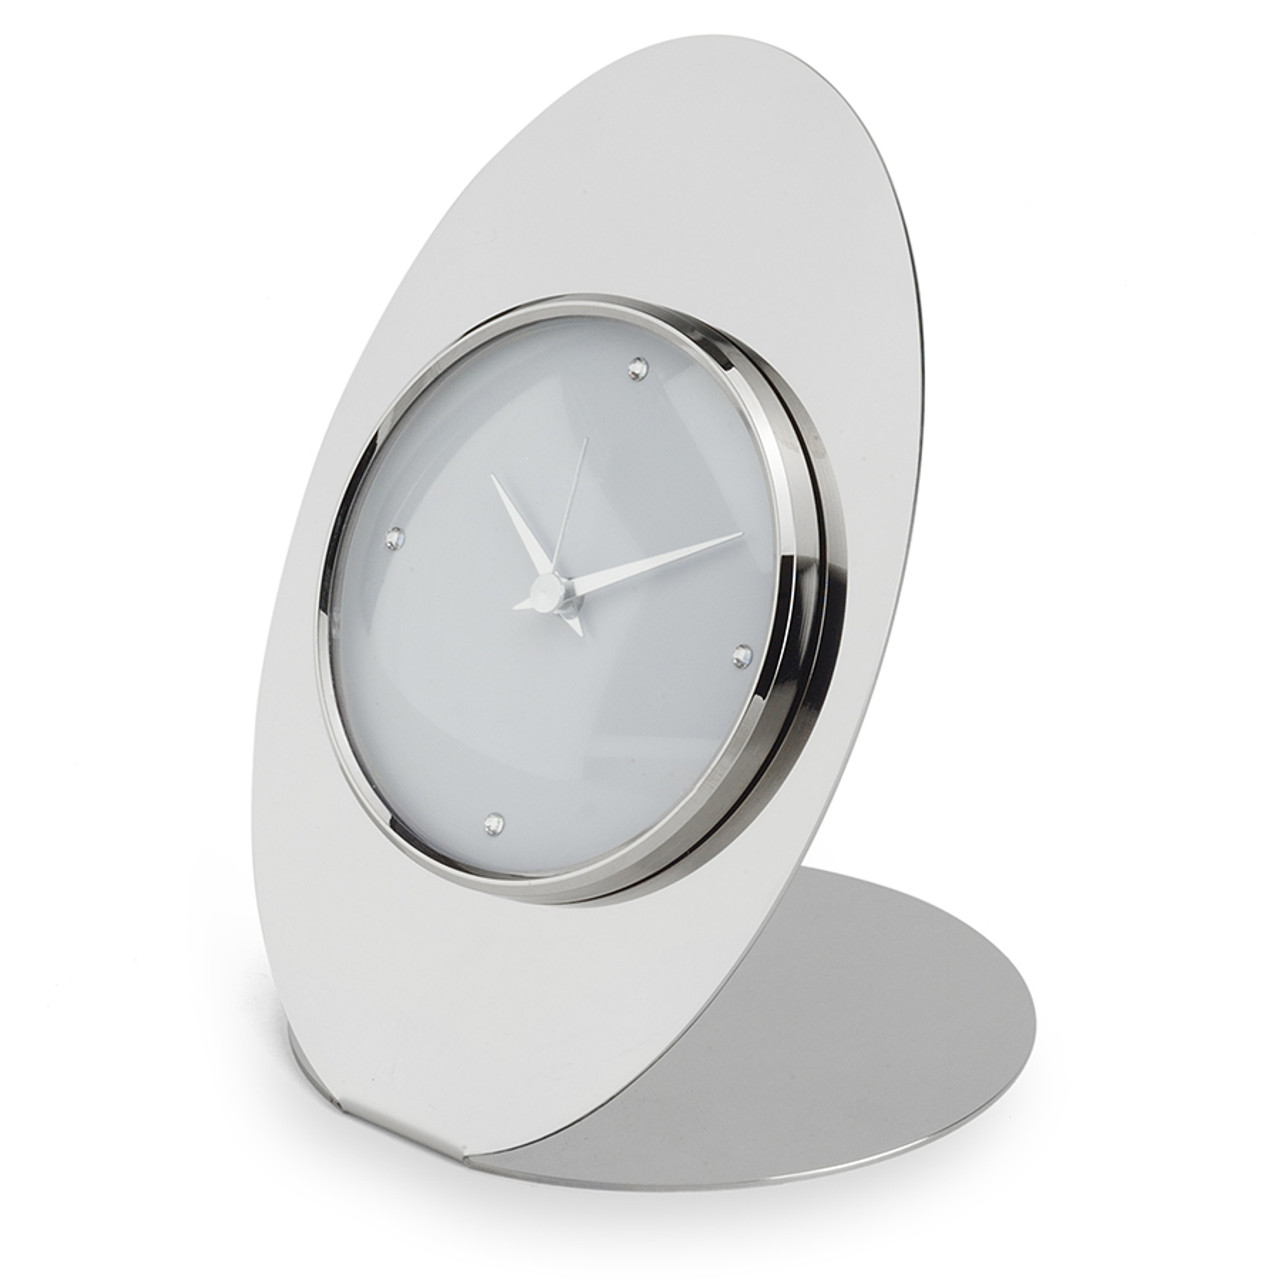 Oval Clock Face Oval White Face